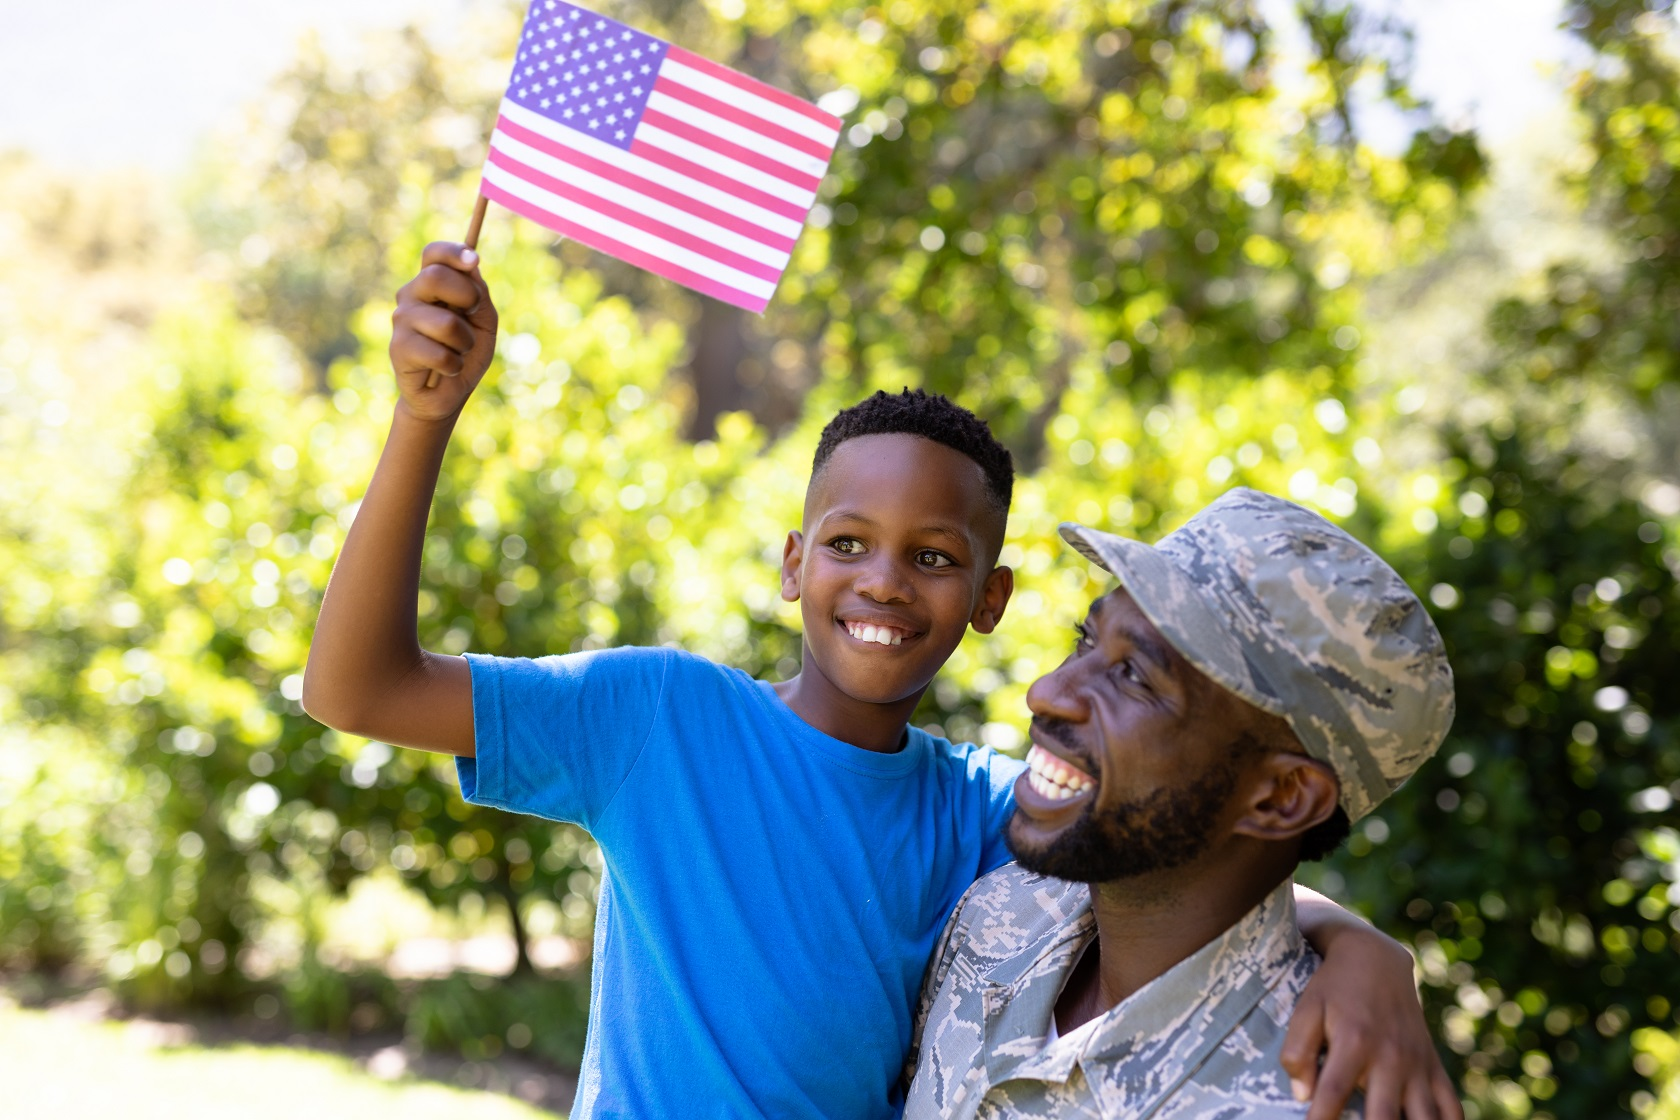 military father with his son holding an American flag